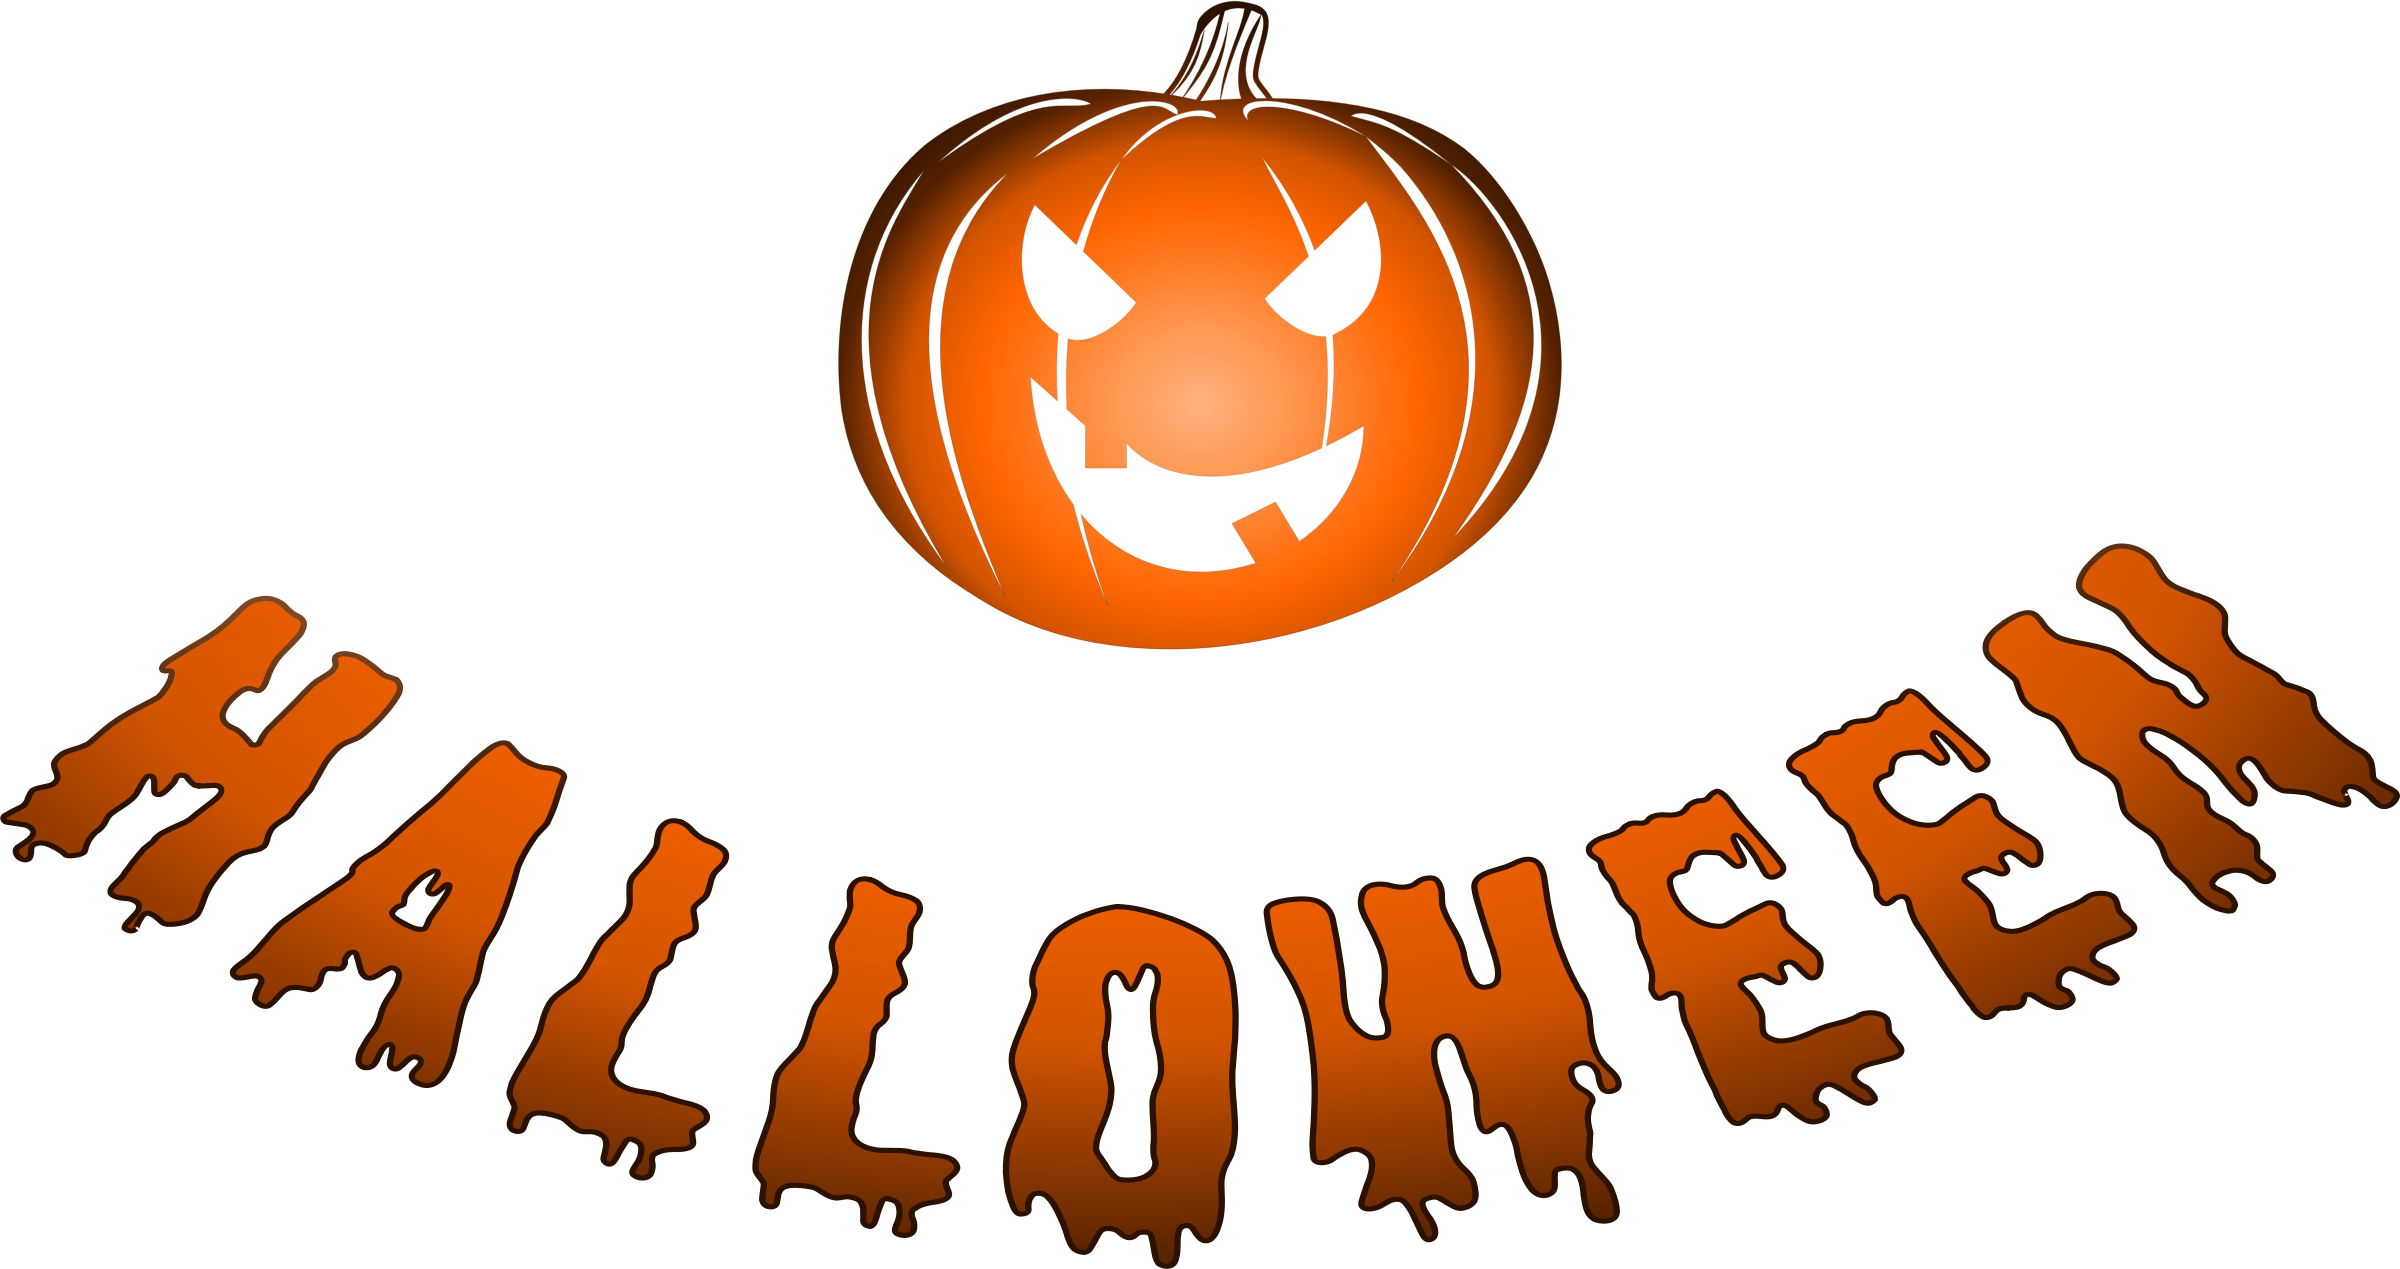 Pumpkin font clipart clipart transparent download Clipart - Halloween logo with jack-o'-lantern clipart transparent download